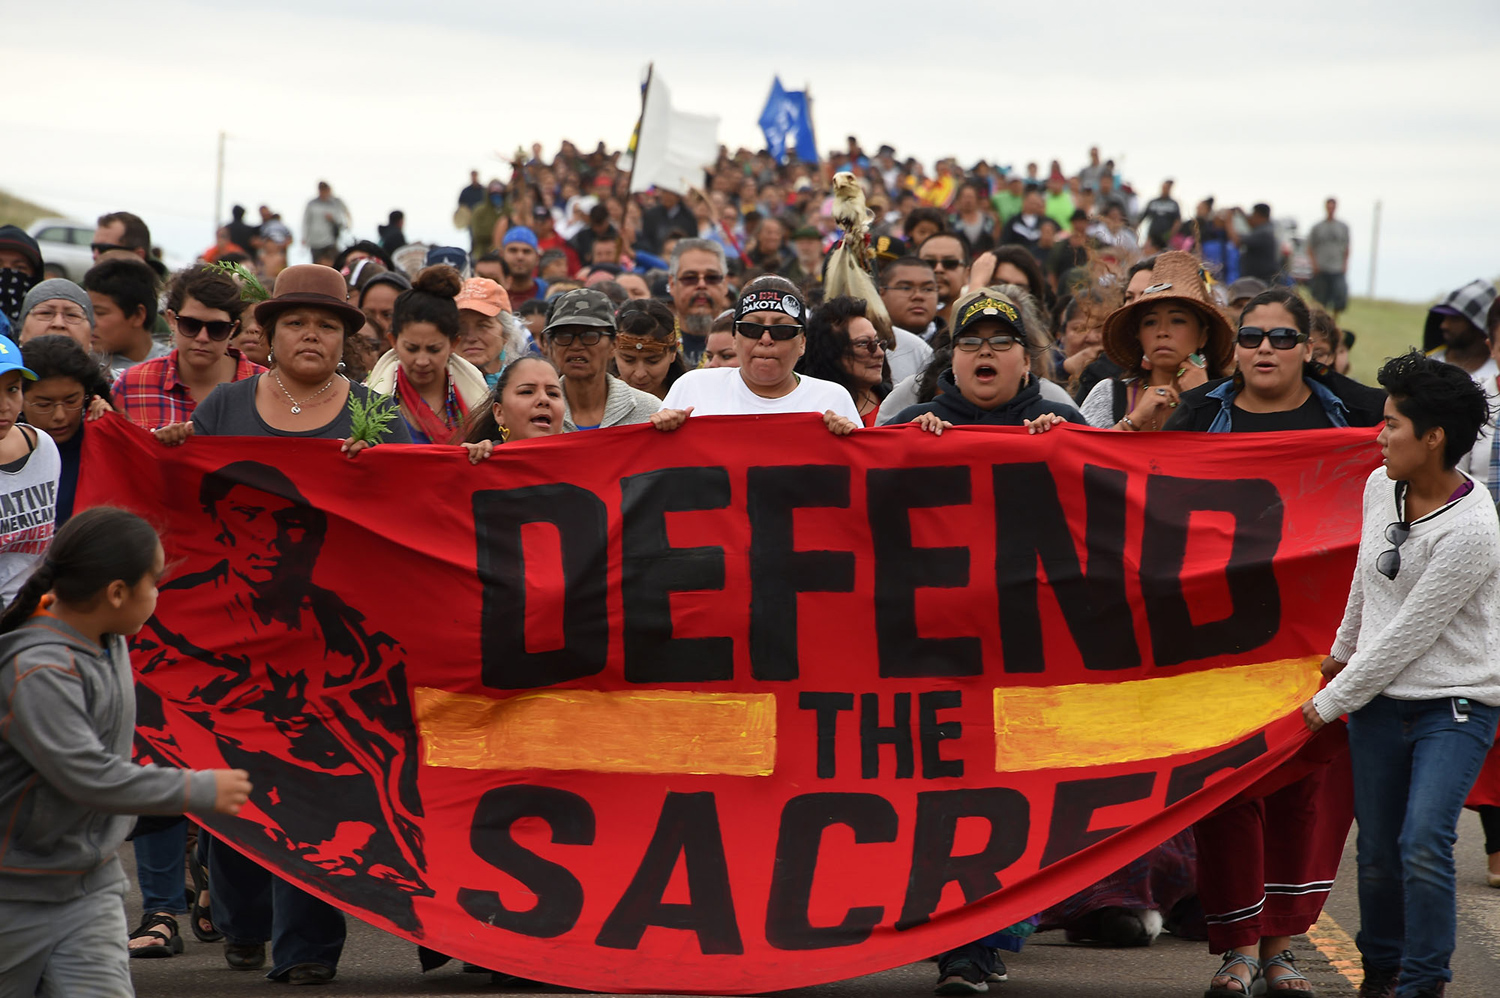 Native Americans march to a burial ground sacred site that was disturbed by bulldozers building the Dakota Access Pipeline (DAPL), near the encampment where hundreds of people have gathered to join the Standing Rock Sioux Tribe's protest of the oil pipeline that is slated to cross the Missouri River nearby, September 4, 2016 near Cannon Ball, North Dakota. Protestors were attacked by dogs and sprayed with an eye and respiratory irritant yesterday when they arrived at the site to protest after learning of the bulldozing work. / AFP / Robyn BECK        (Photo credit should read ROBYN BECK/AFP/Getty Images)